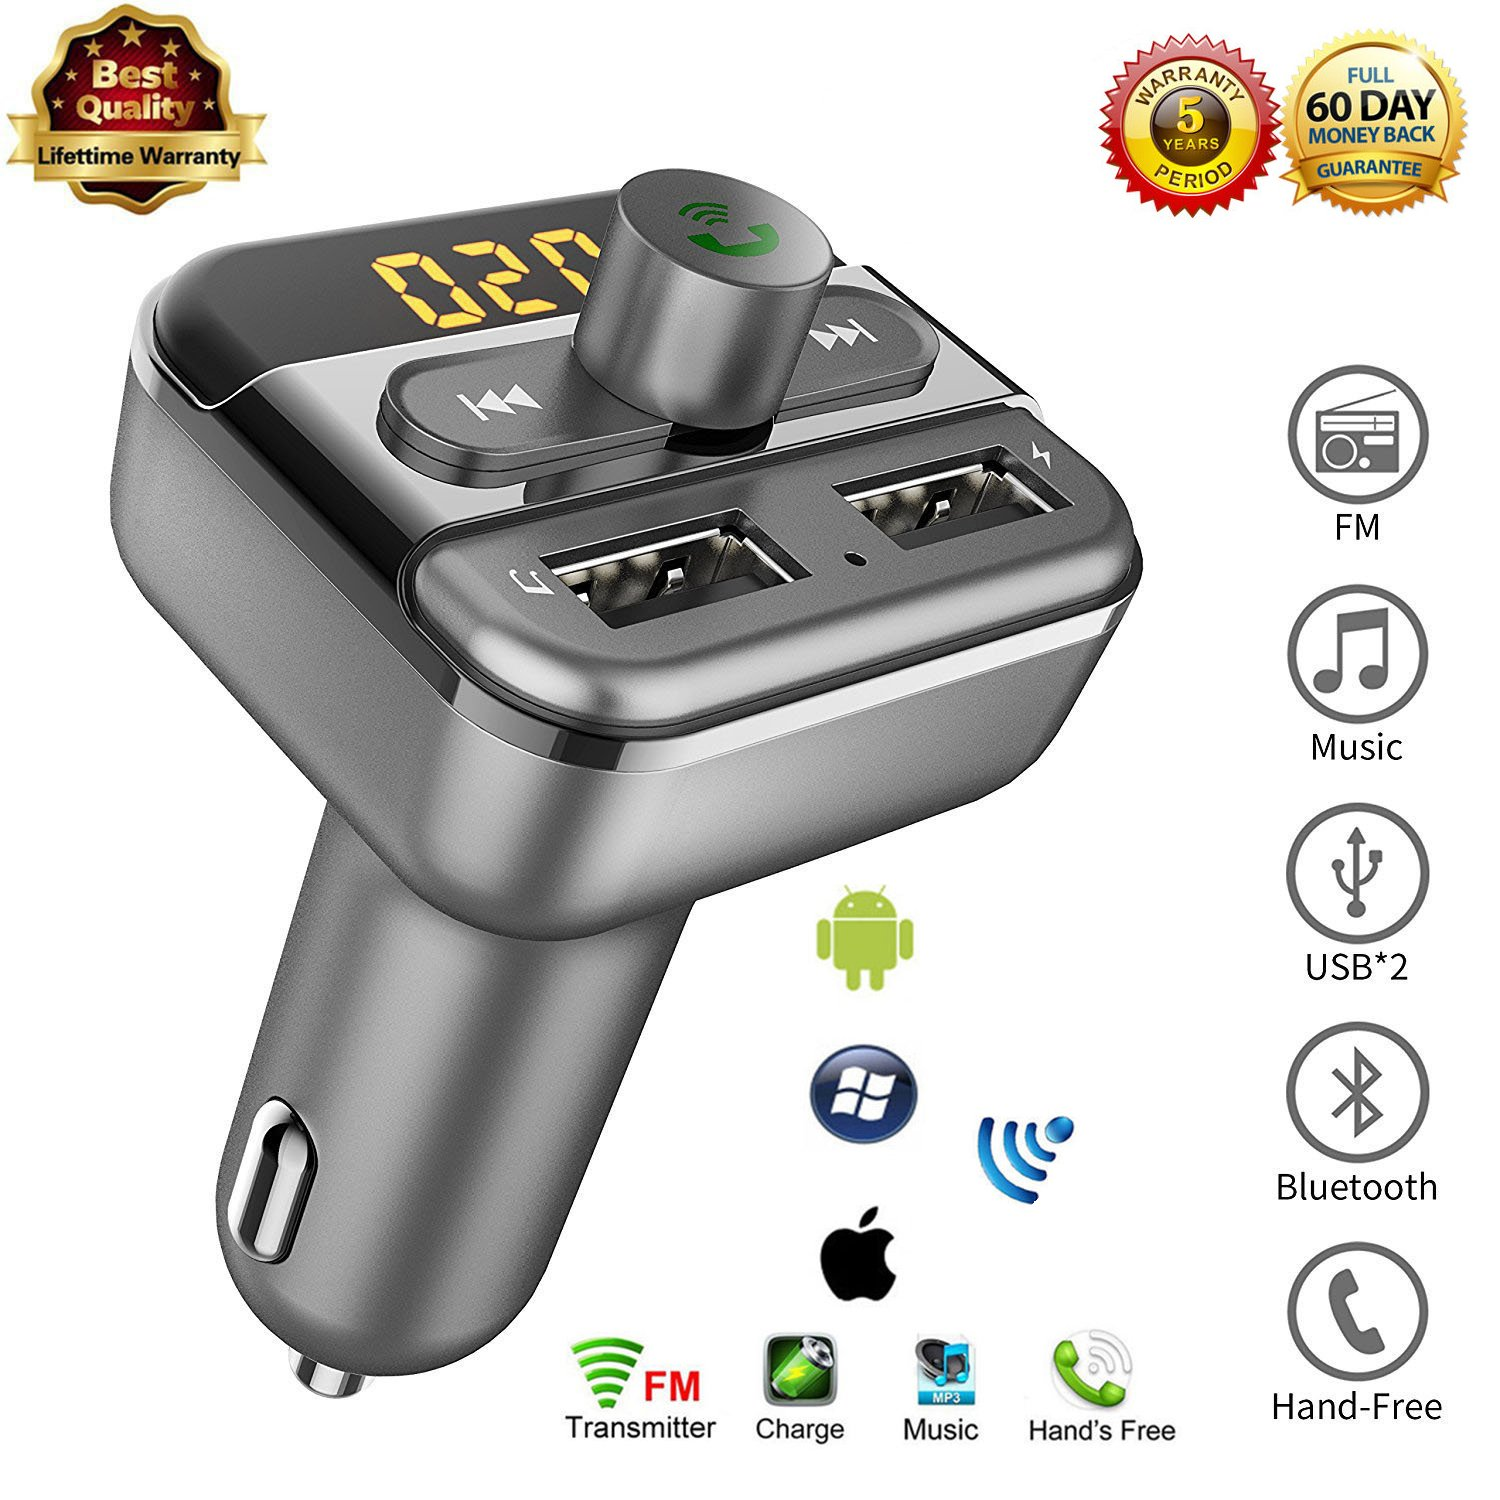 Wireless Bluetooth FM Transmitter - Dual USB Ports Car Kit Support USB Flash Driver and Micro SD Card Hand-free Radio Receiver For Apple iPhone8/X iPod iPad Samsung Galaxy Note8 Android Smartphone